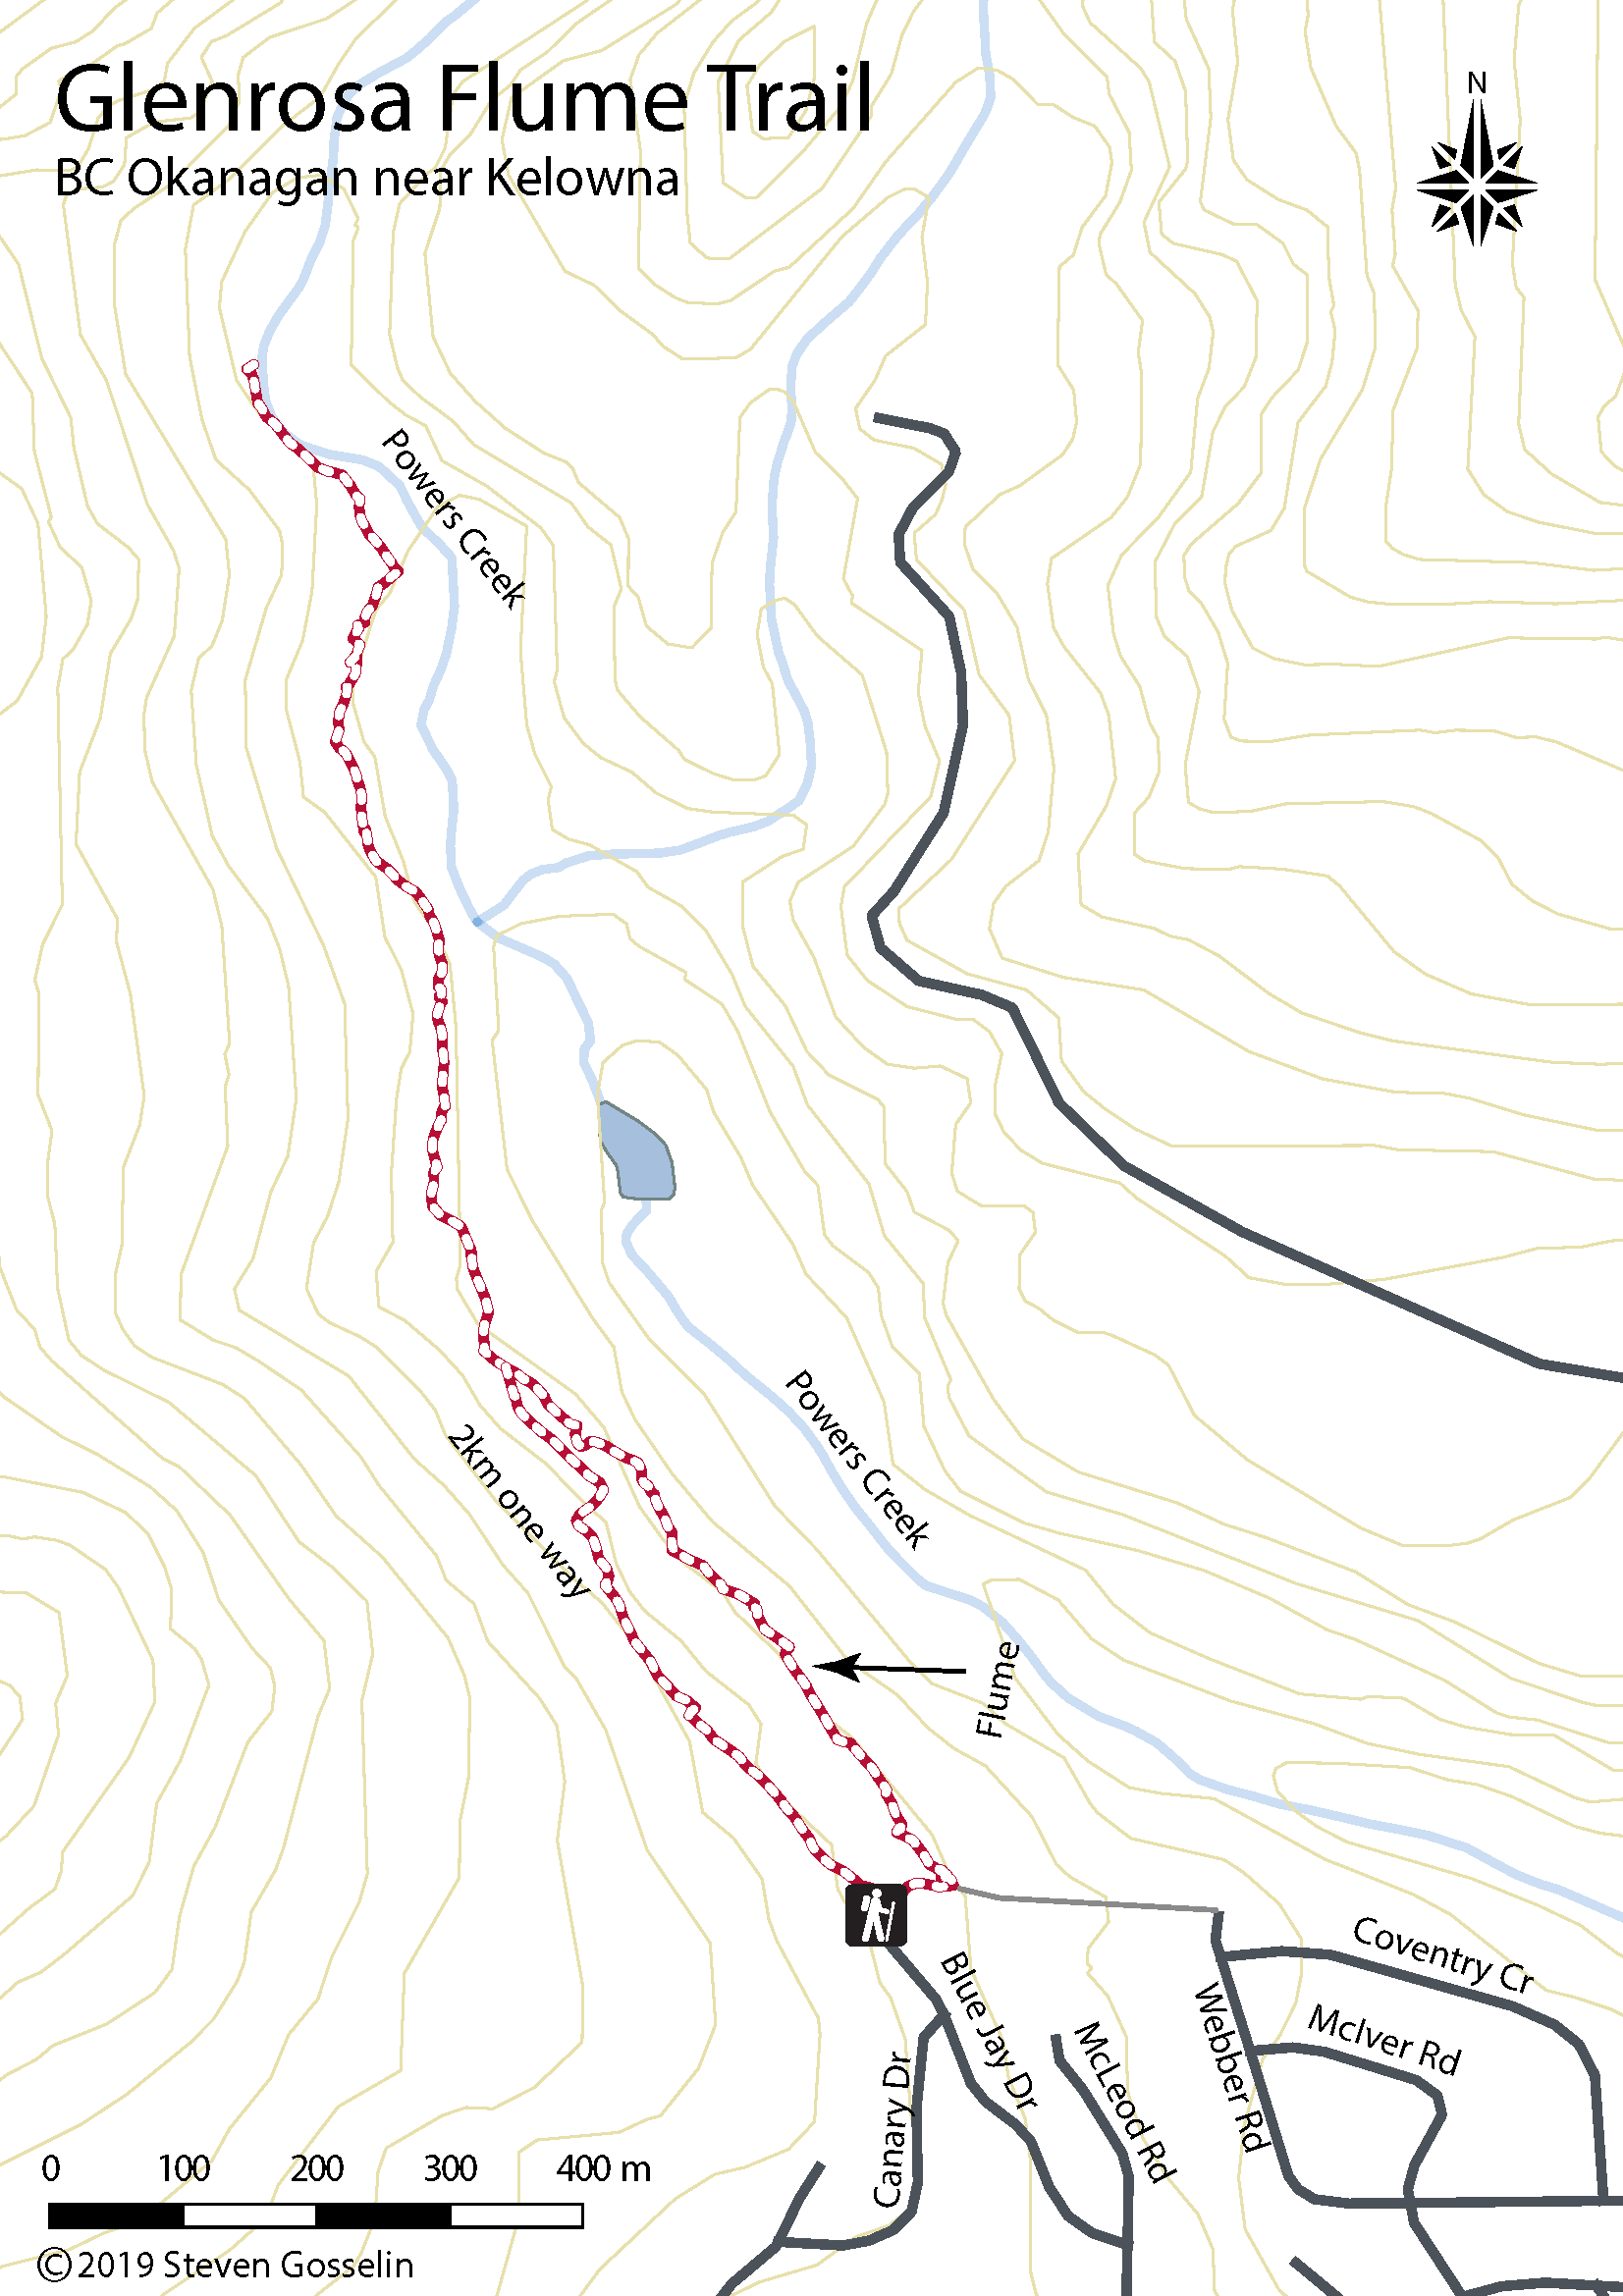 Map of Glenrosa Flume trail